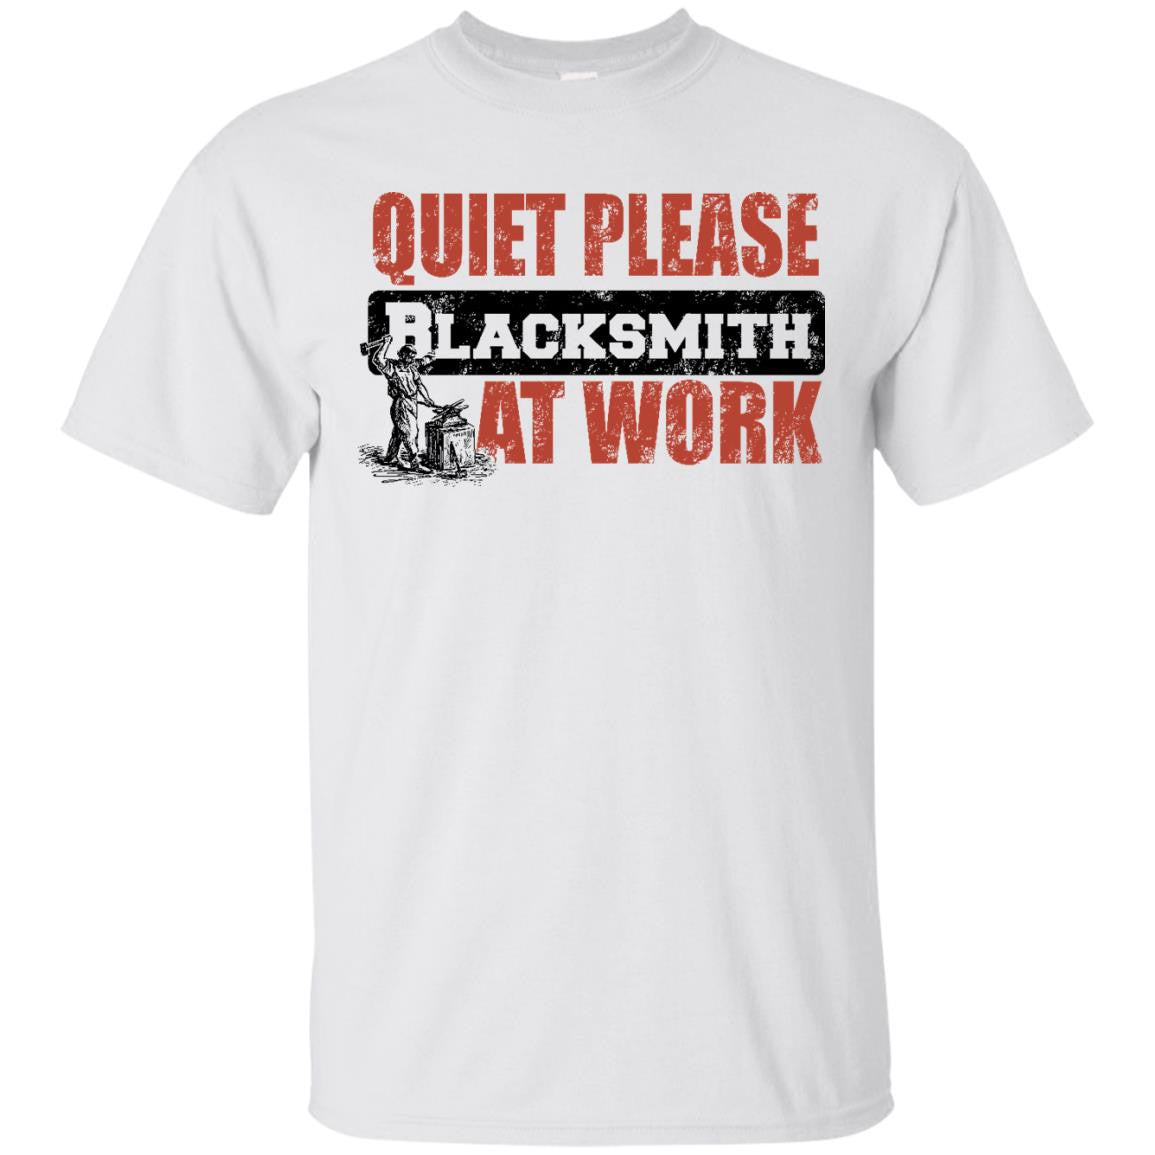 Quiet Please Black Smith at Work T-Shirt